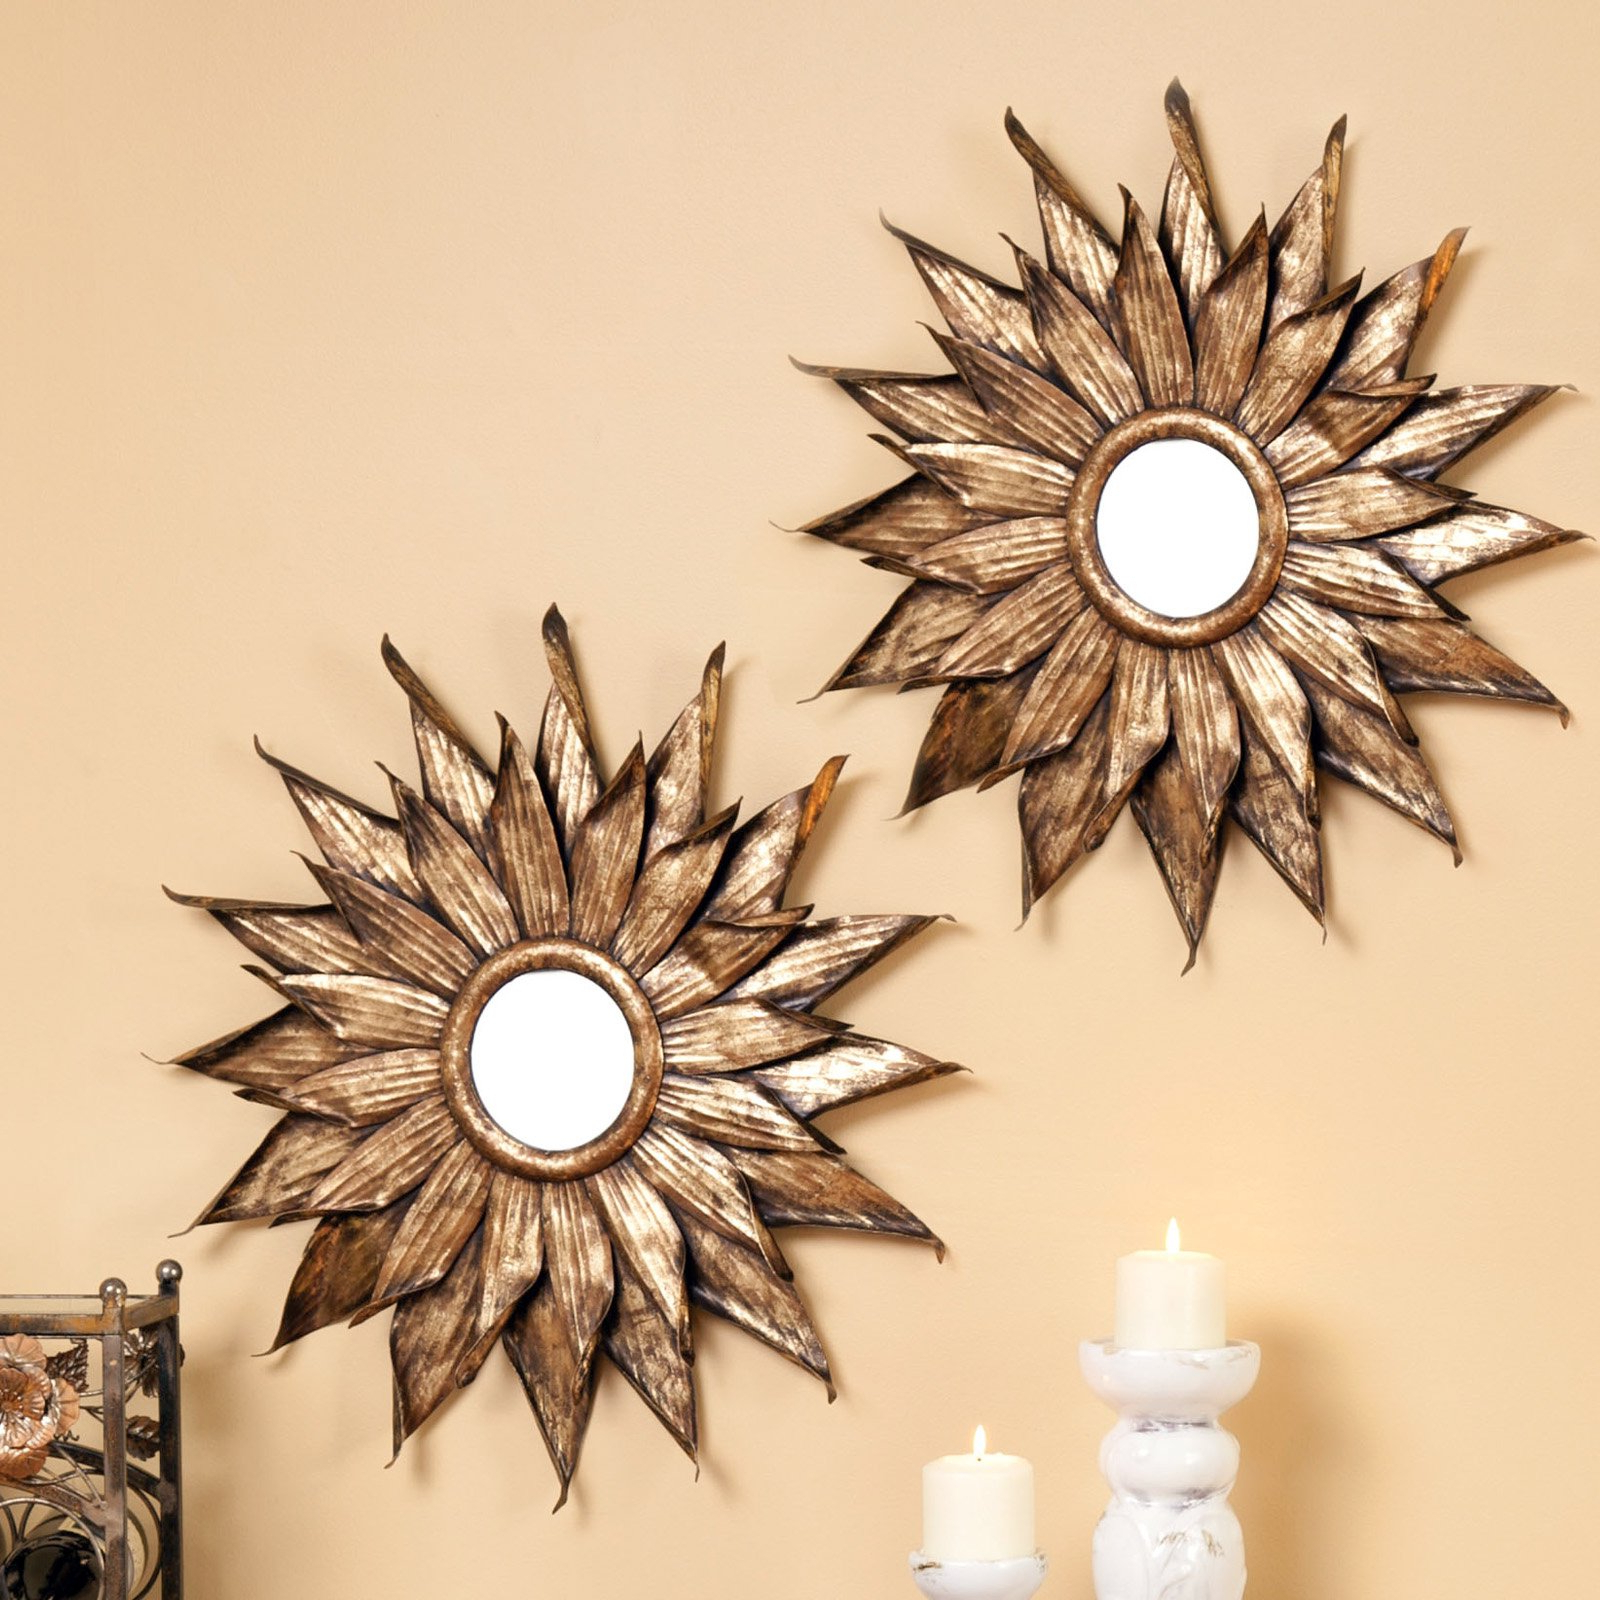 Most Recently Released Decorative Wall Mirror Sets Pertaining To Decorative Wall Mirrors Ideas (Gallery 14 of 20)